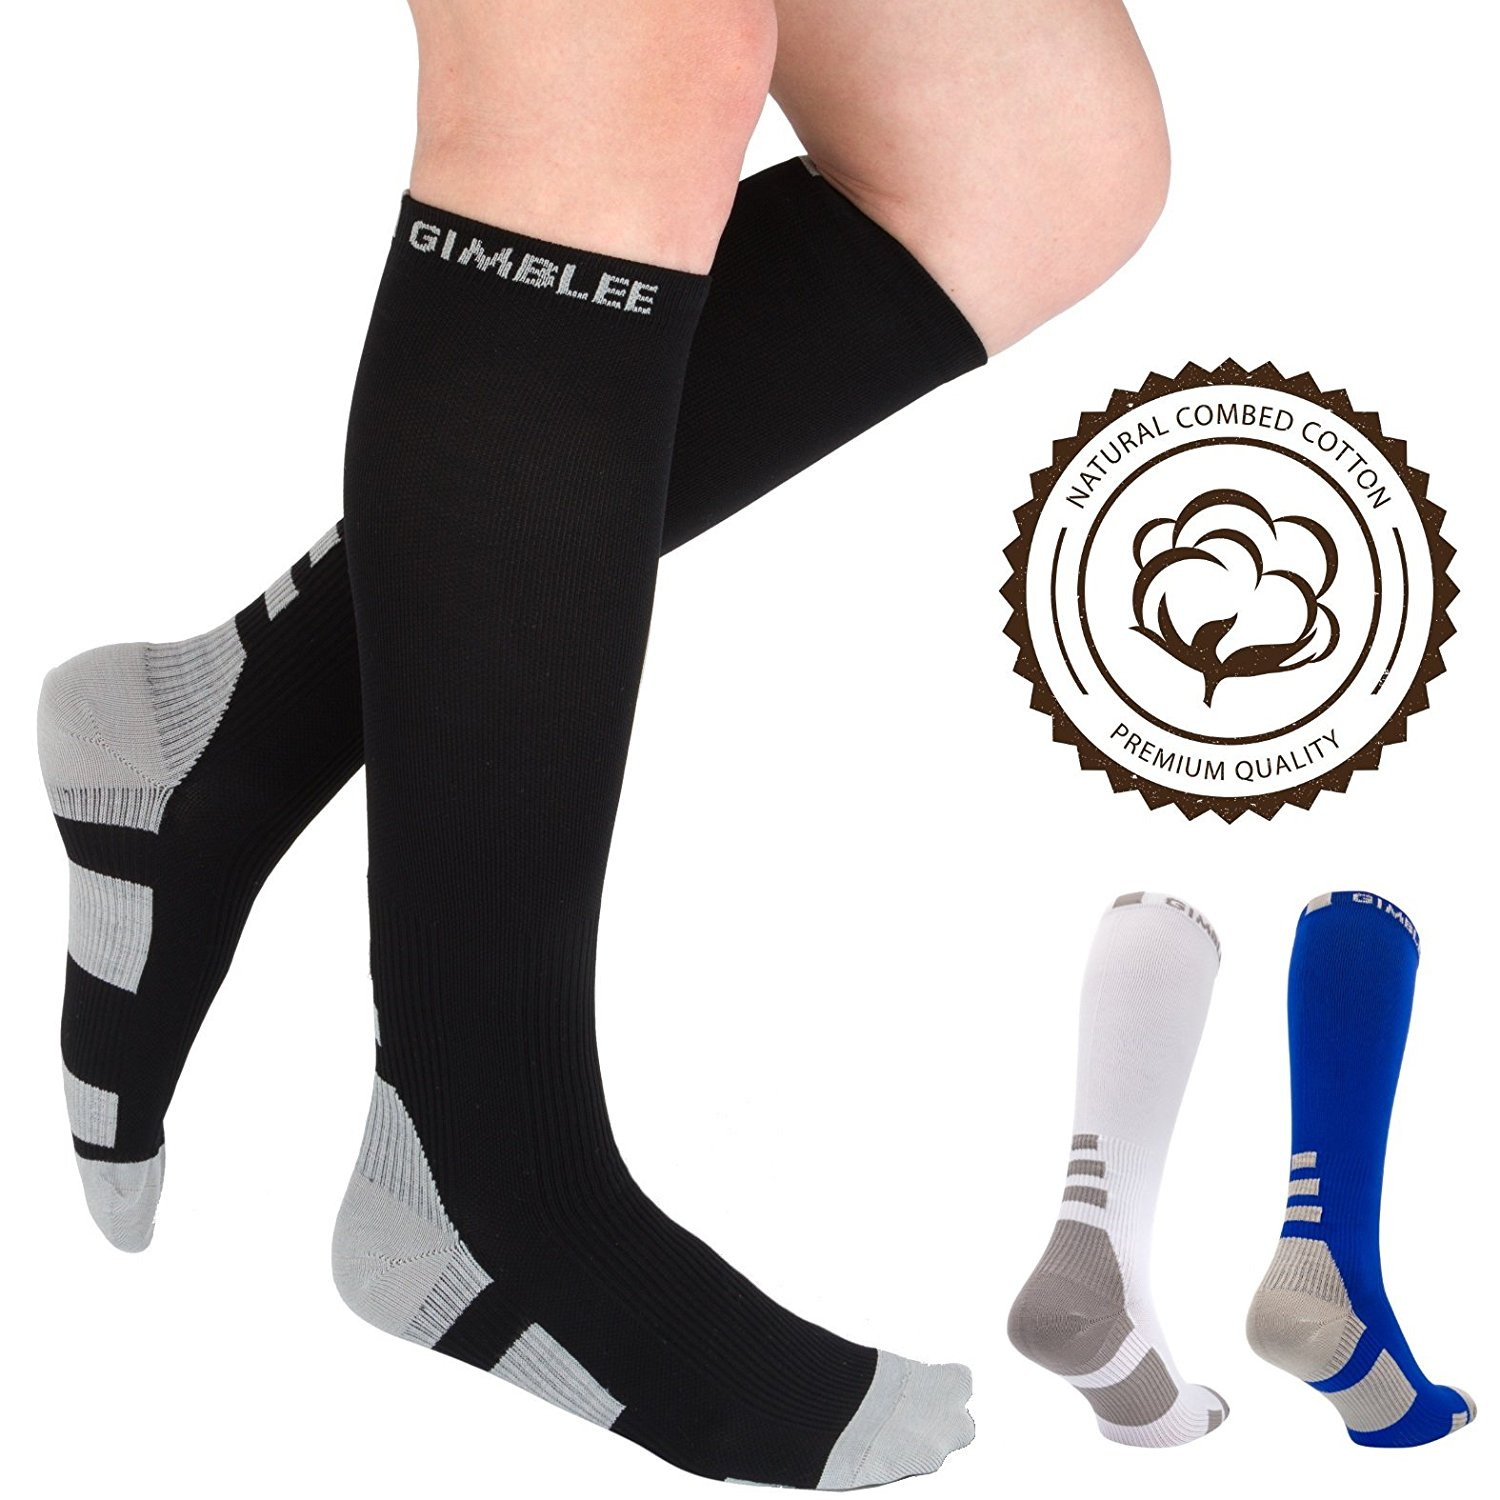 d8342f8b4df Get Quotations · Compression Socks - Compression Stockings Women Men - Best  Medical - Long Sleeve - High Graduated